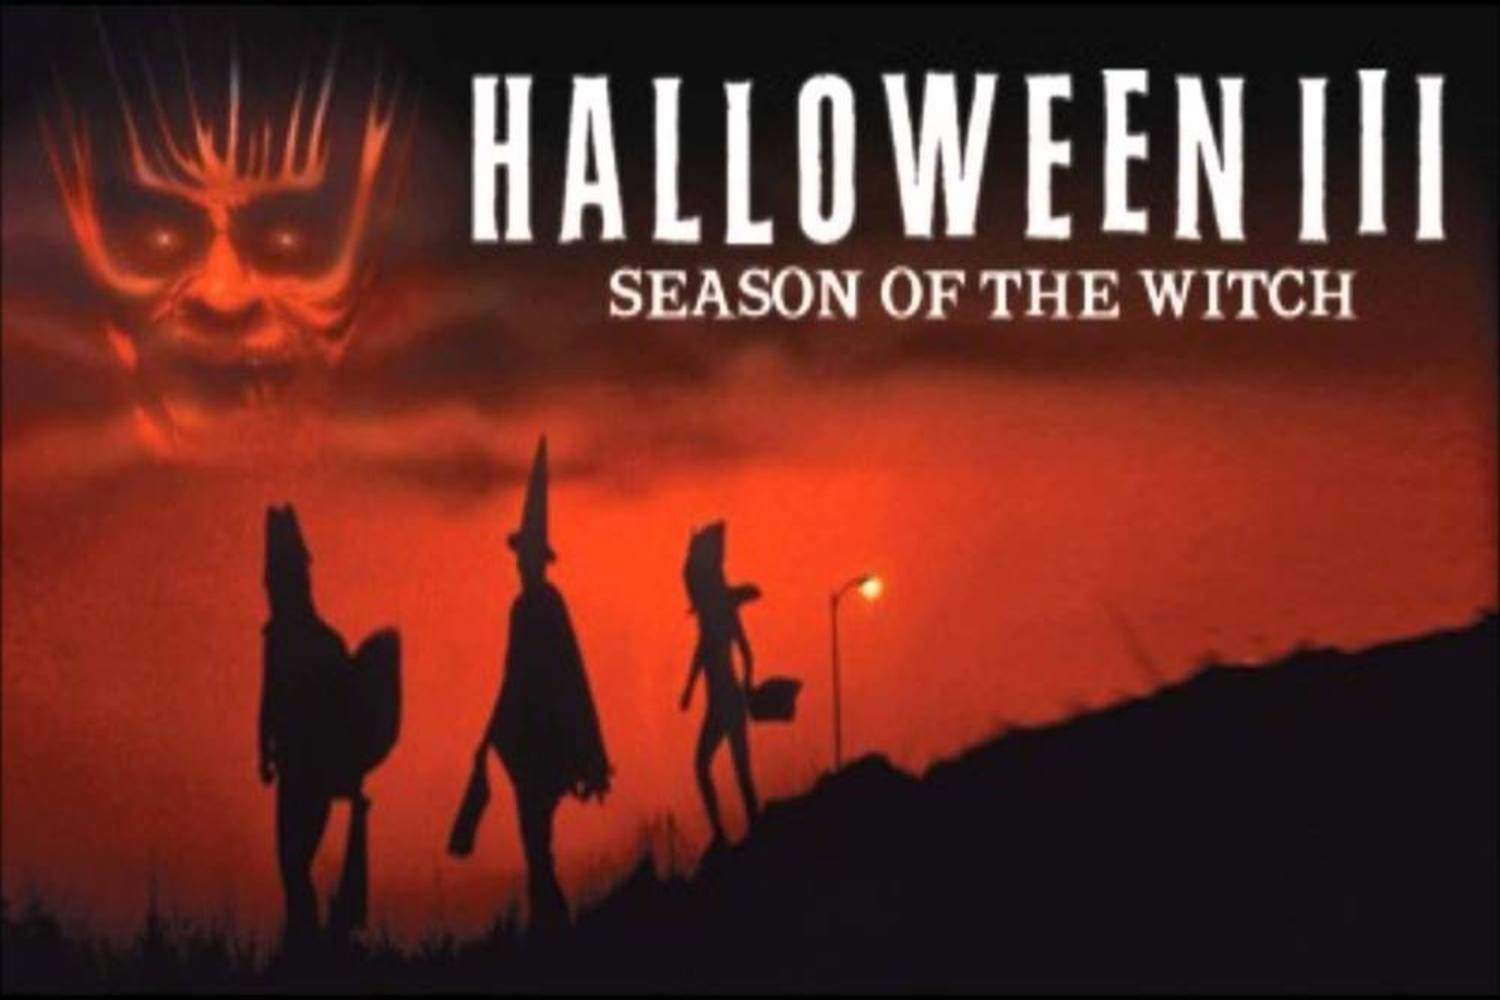 Halloween III: Season Of The Witch - Revisit This Horror Classic!